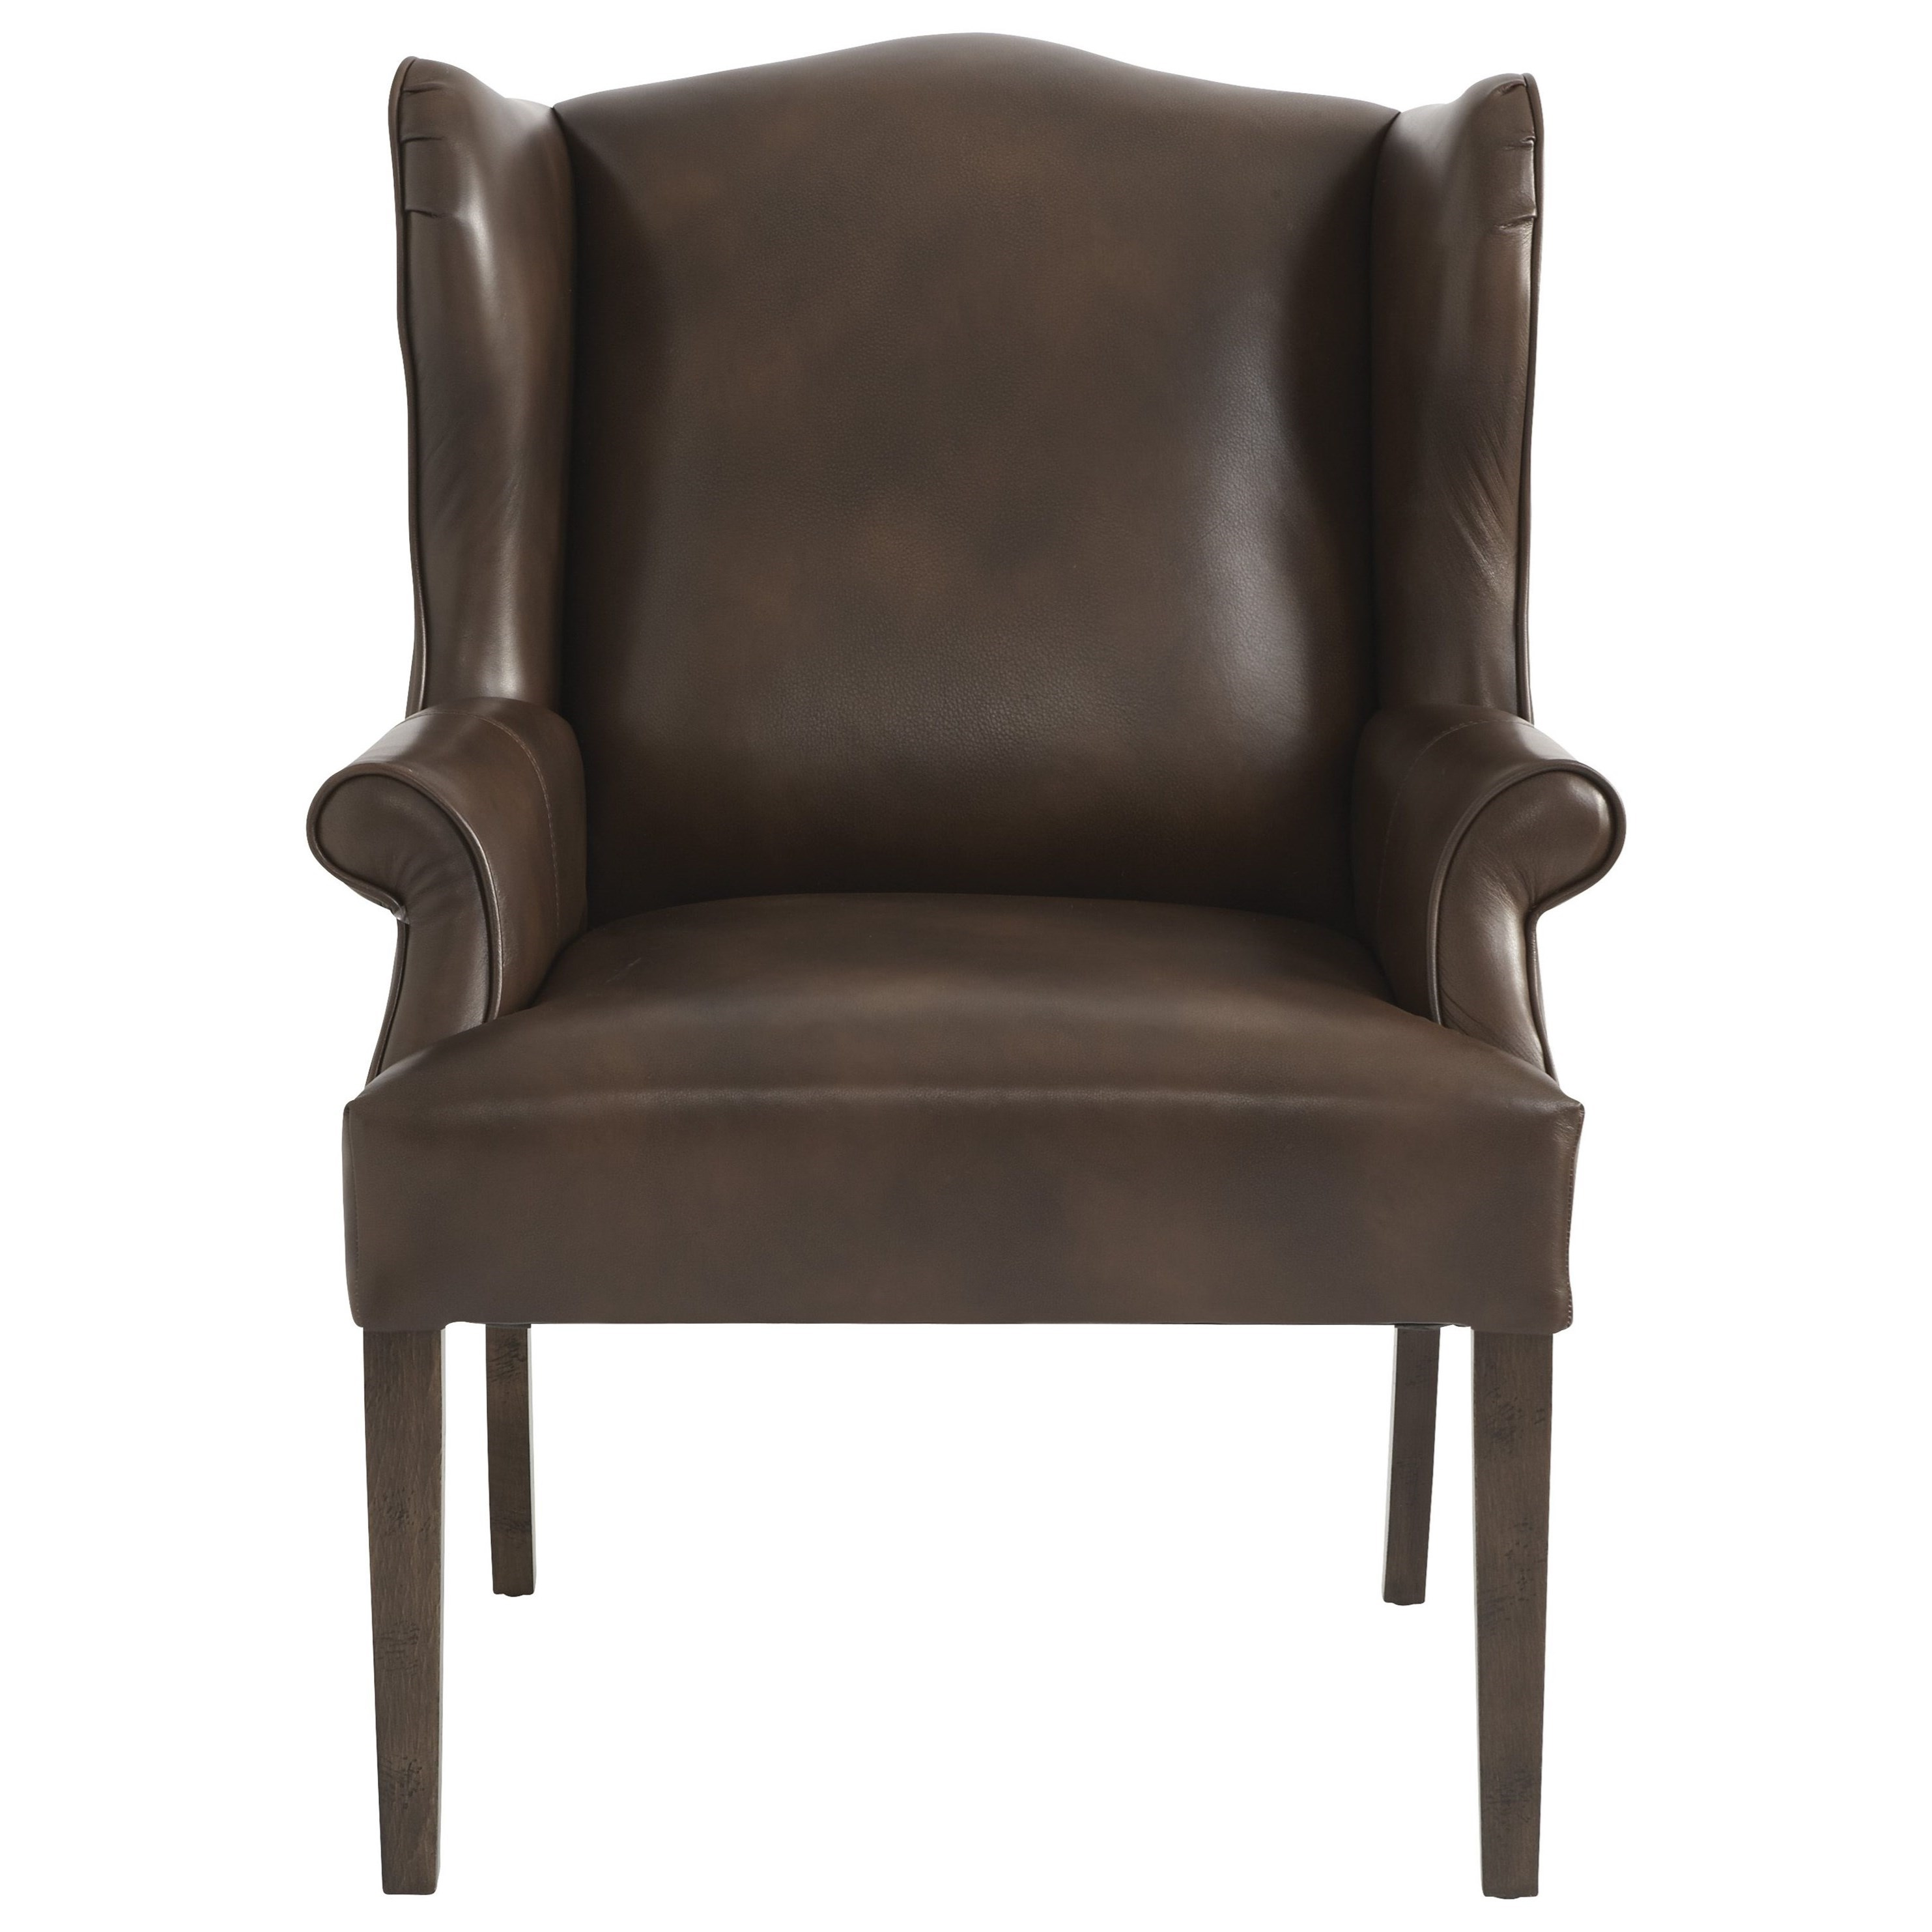 Arden Leather Dining Chair by Bassett at H.L. Stephens